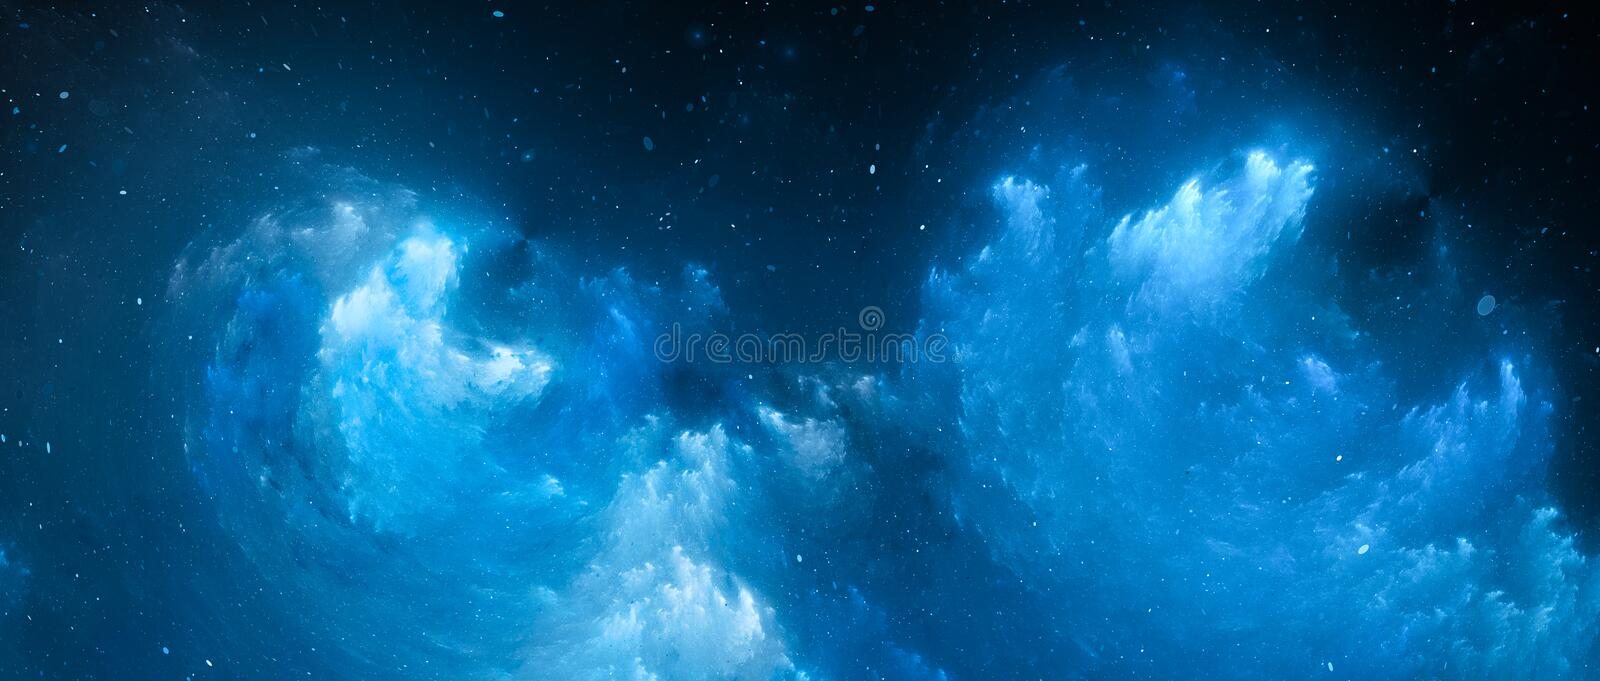 Blue glowing nebula fractal widescreen background stock illustration